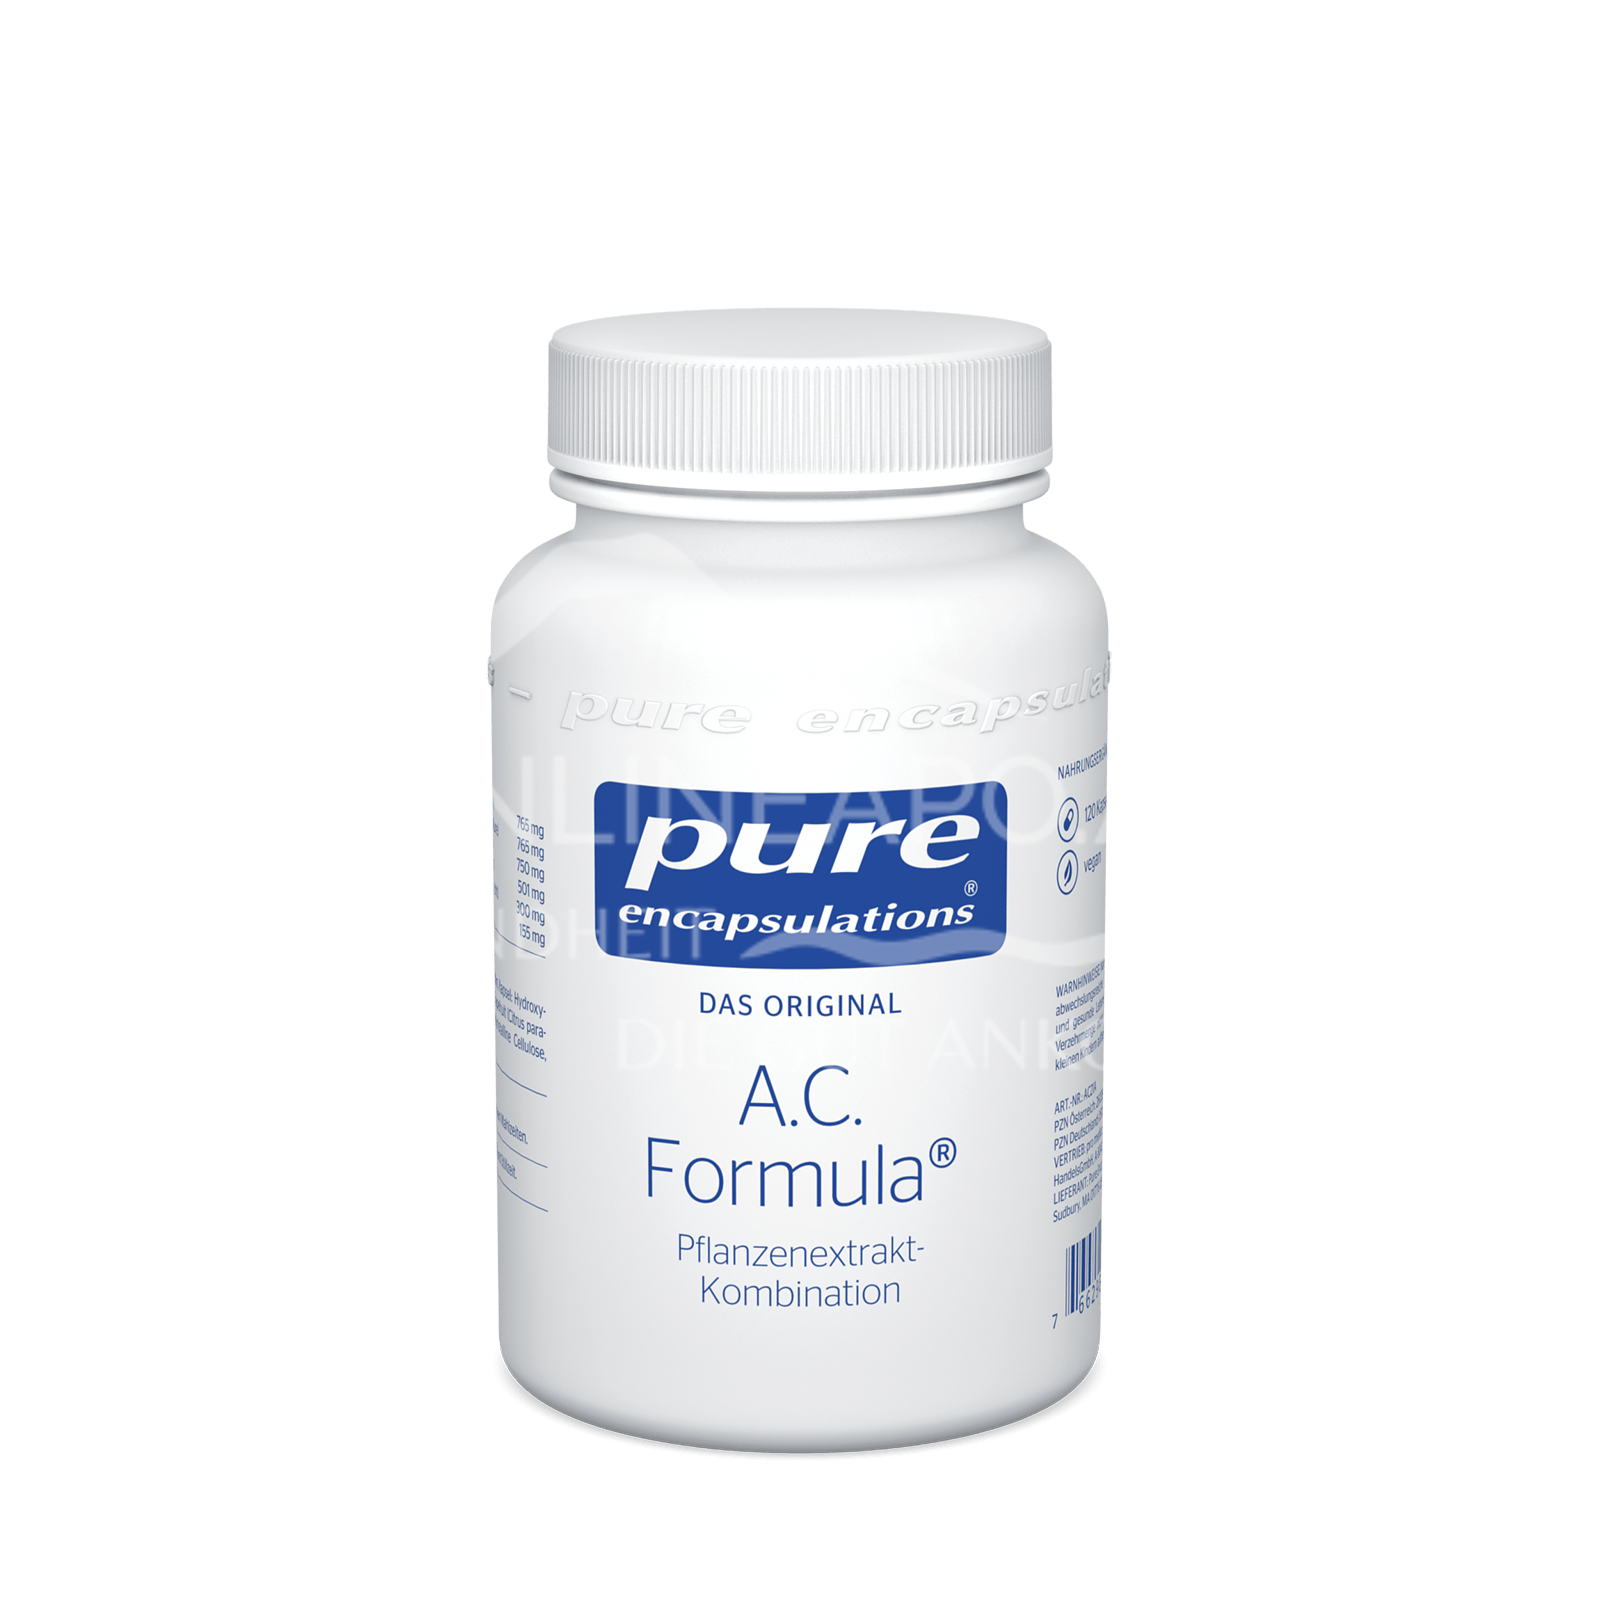 pure encapsulations® A.C. Formula®